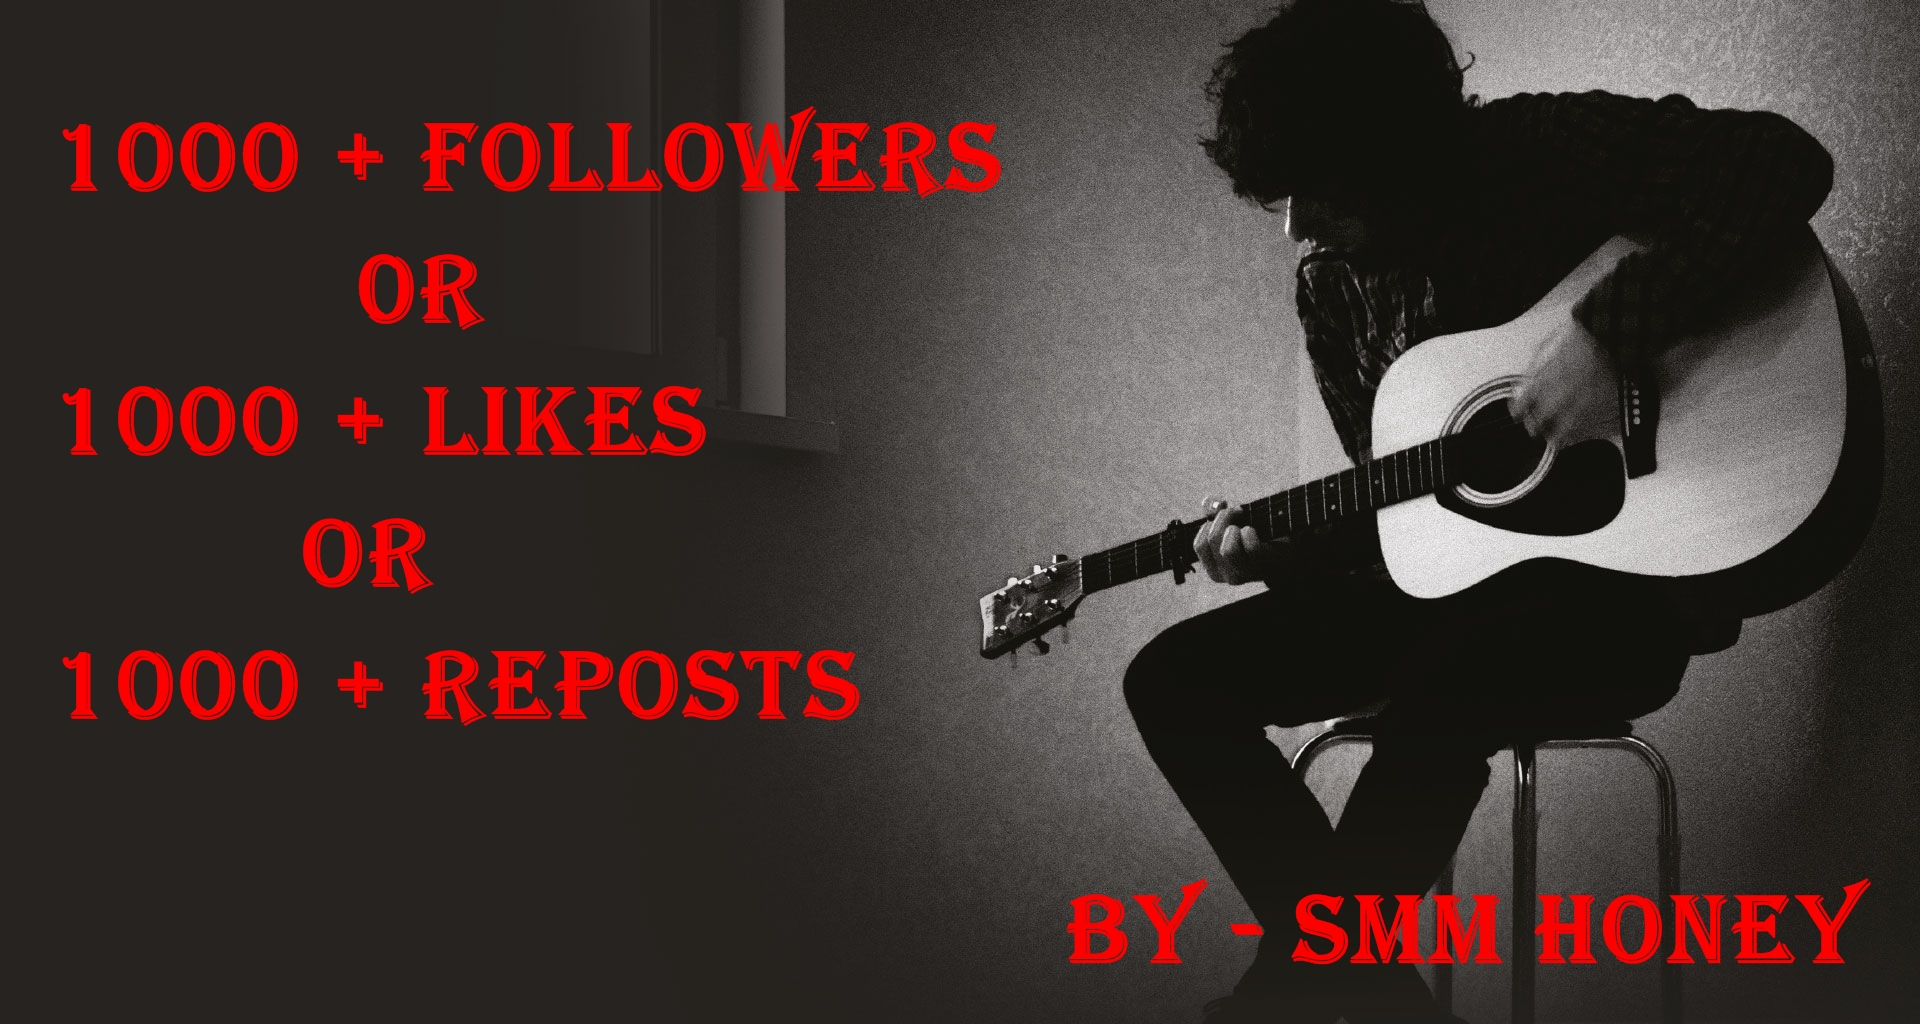 Give u 1000+ followers or likes or reposts